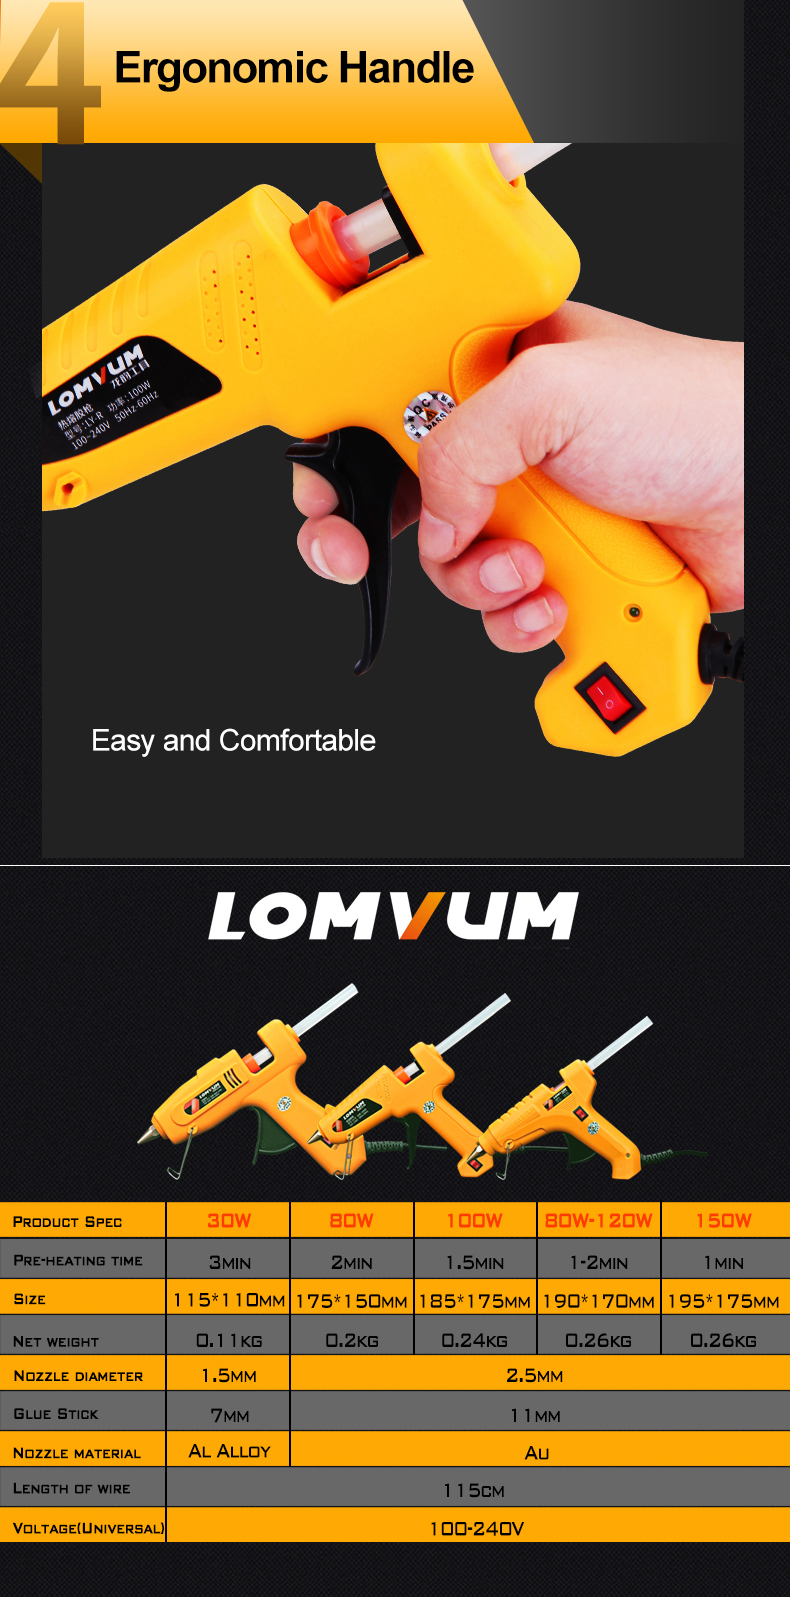 LOMVUM 30W/80W/100W/80-120W/150W High Temp Hot Melt Glue Gun Graft Repair Heat Gun Pneumatic DIY Tools